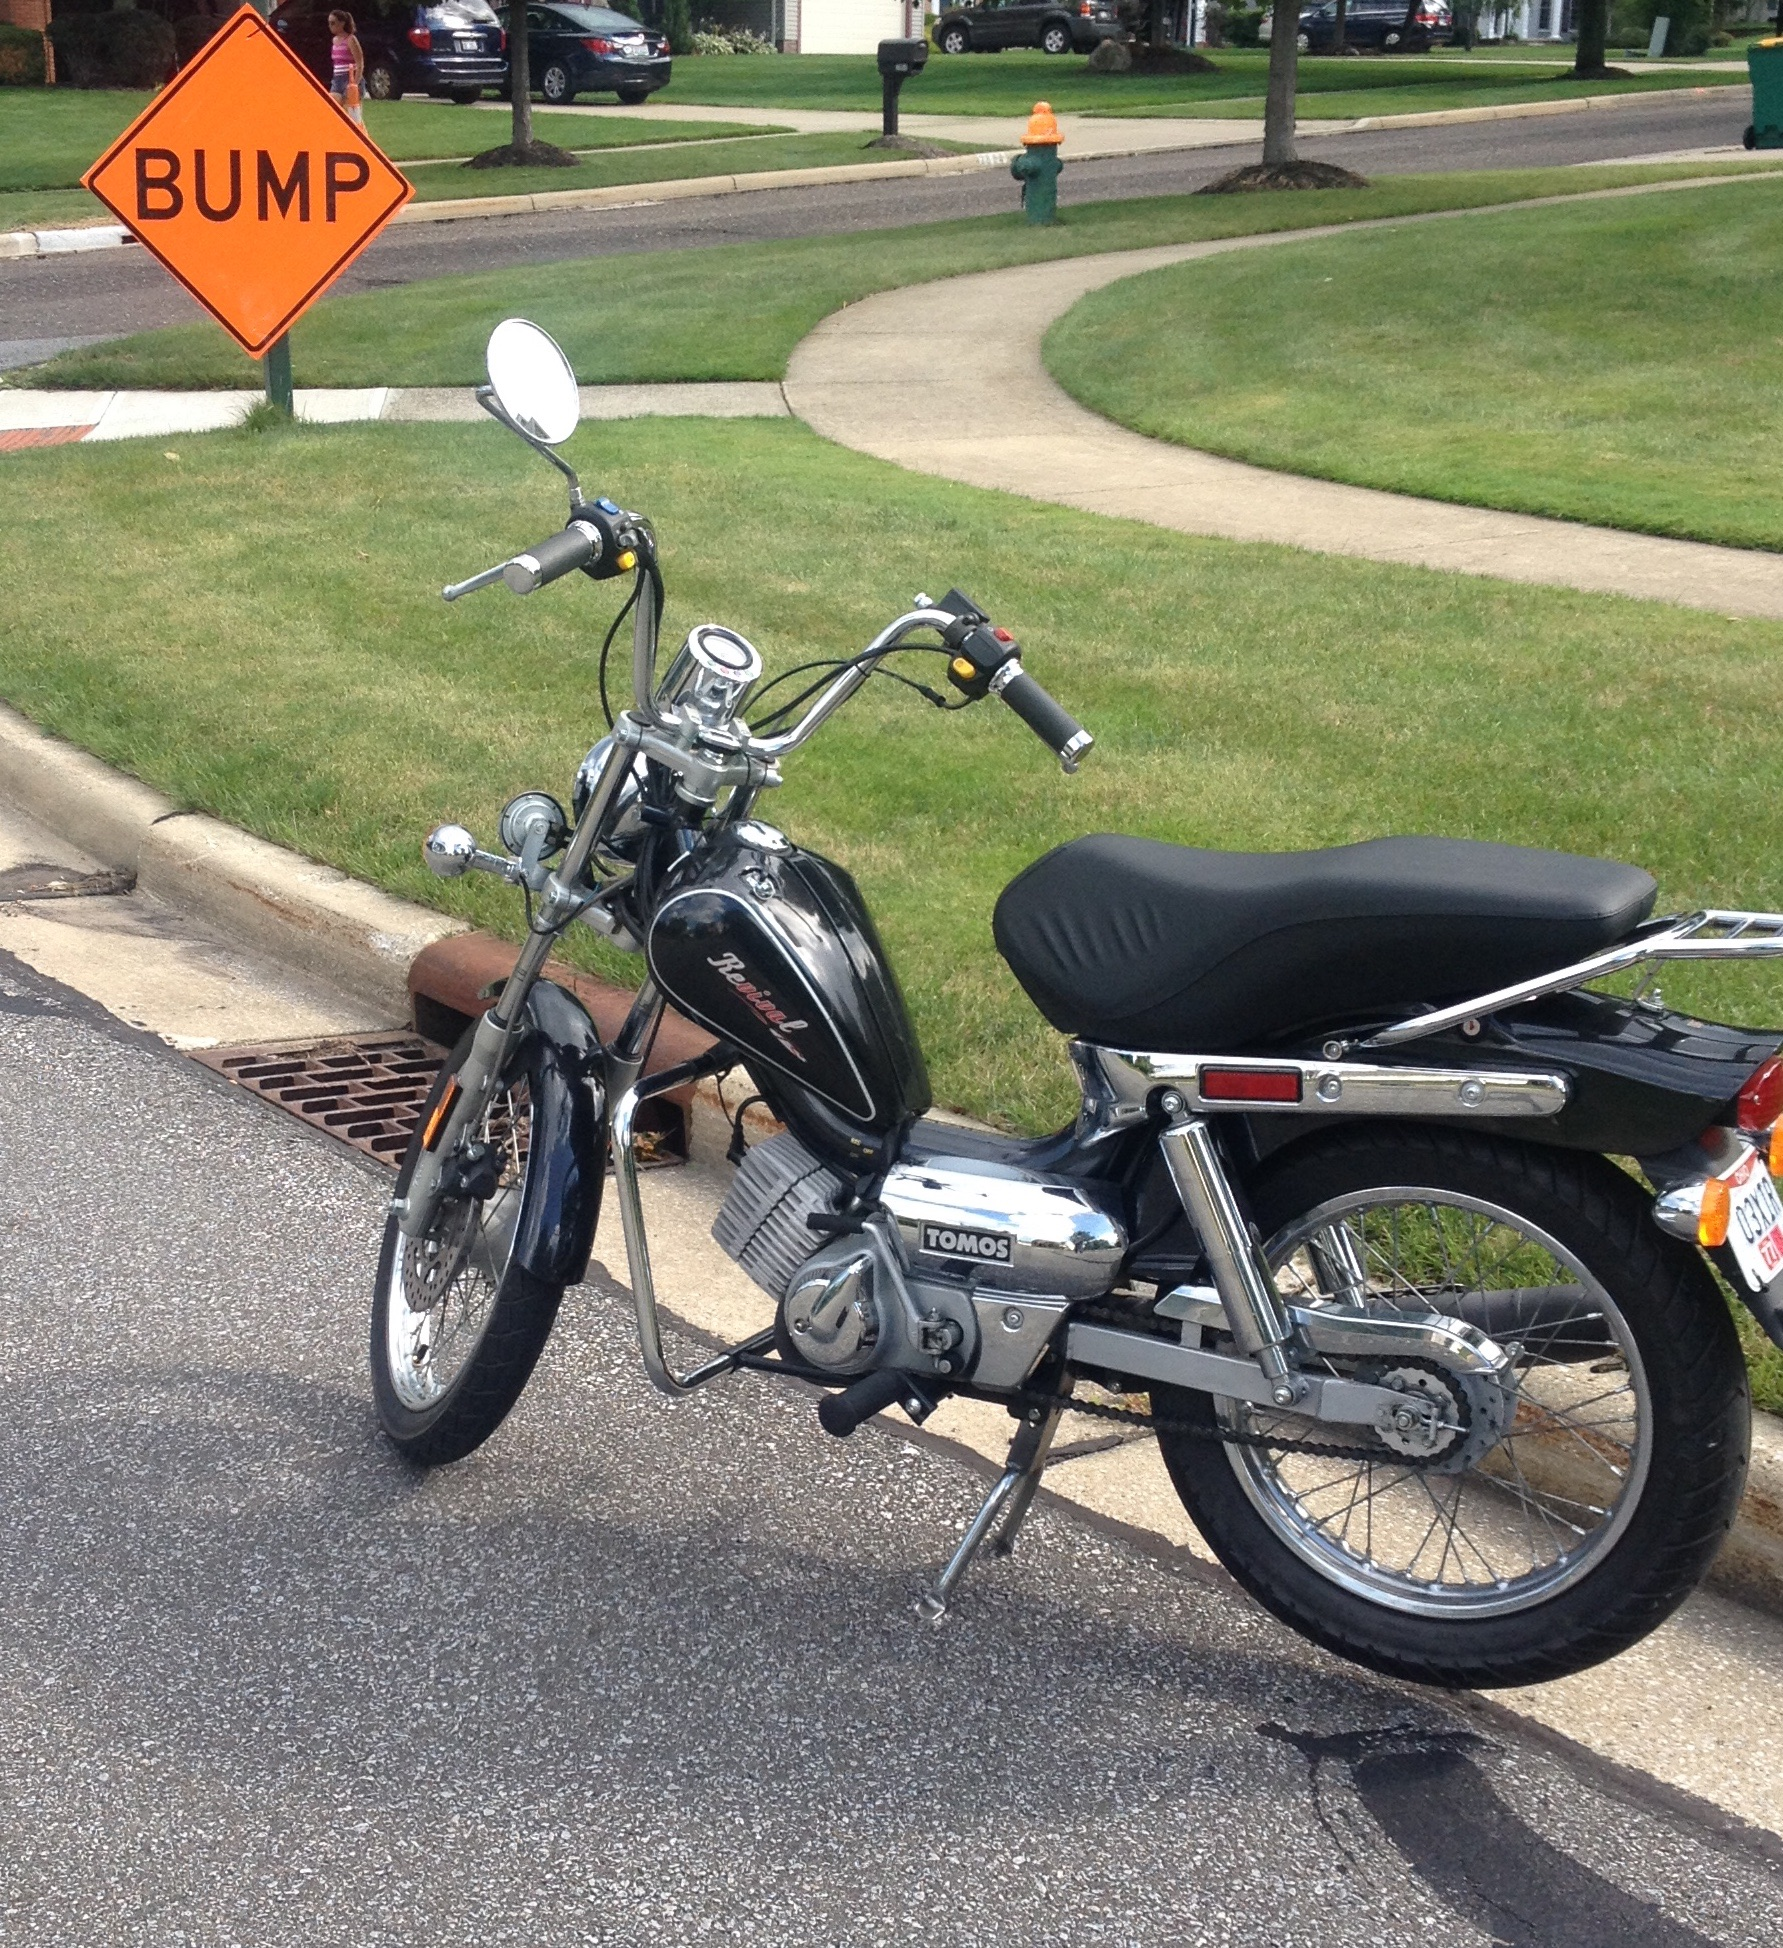 2006 Tomos Revival TS w/ biturbo for sale — Moped Army